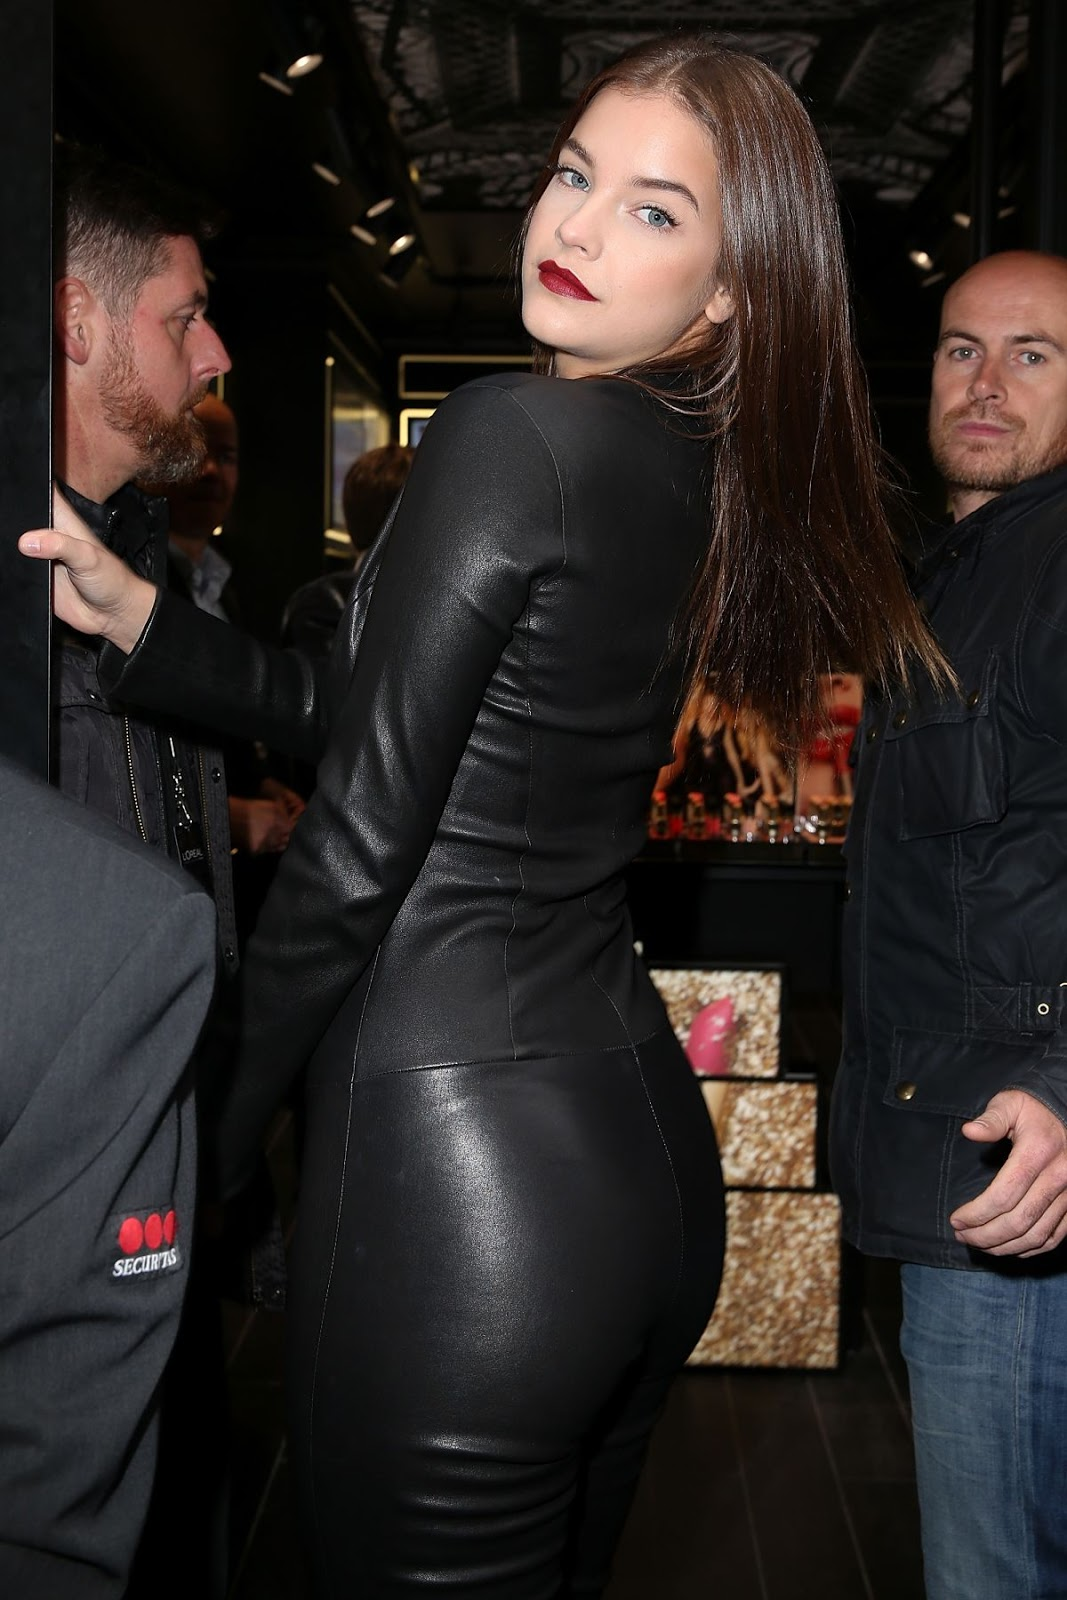 Barbara Palvin Booty in Leather